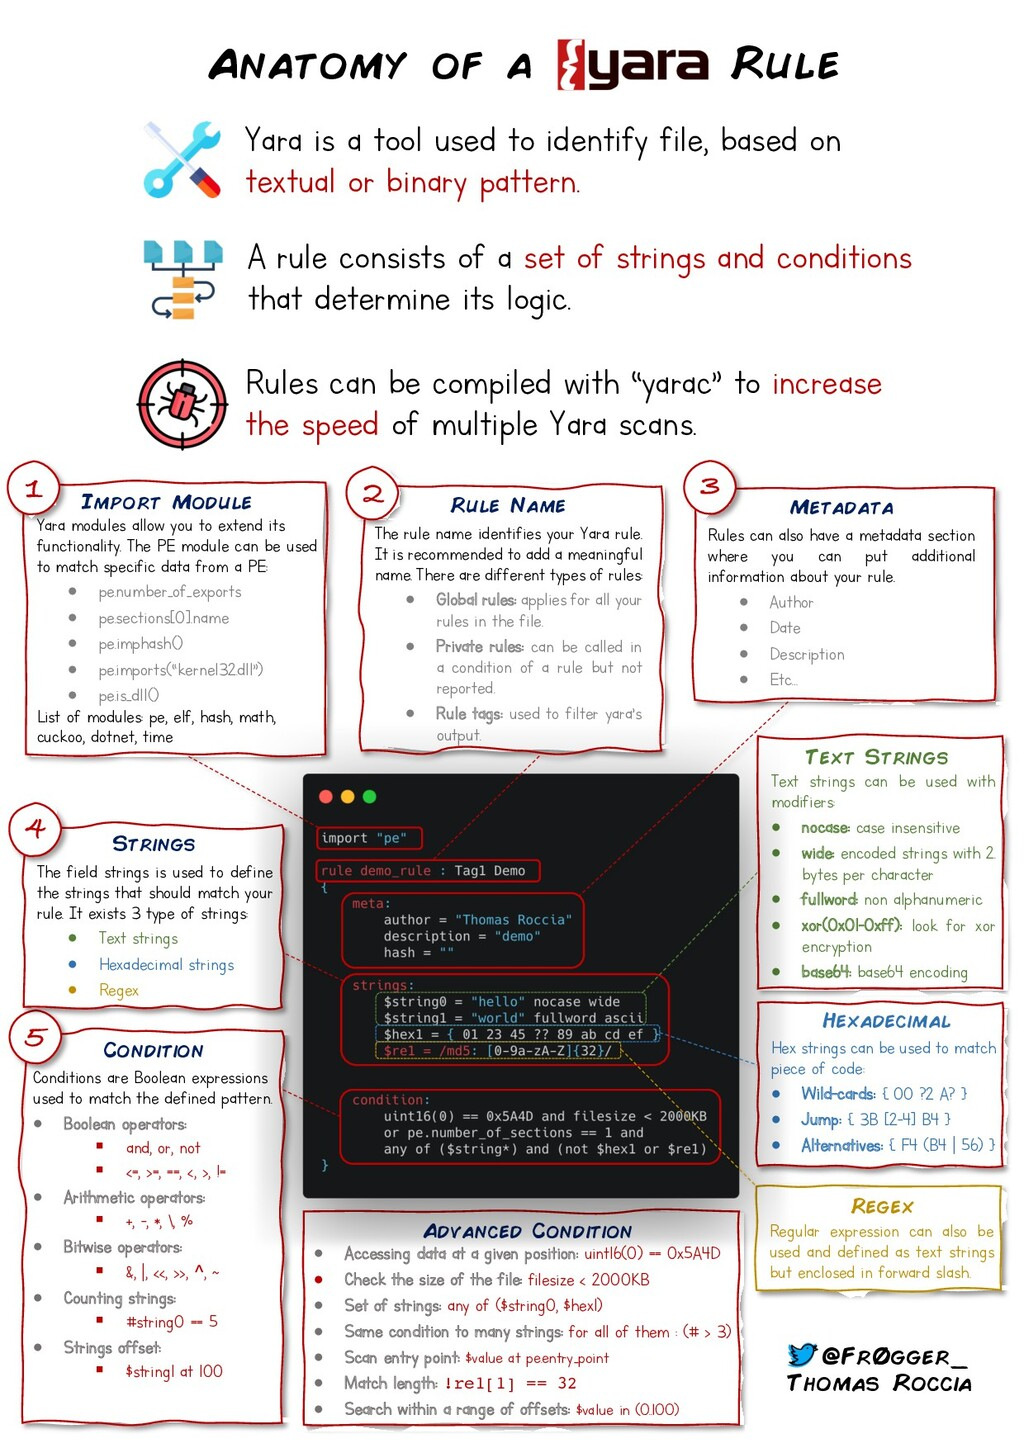 Hex strings can be used to match piece of code:...